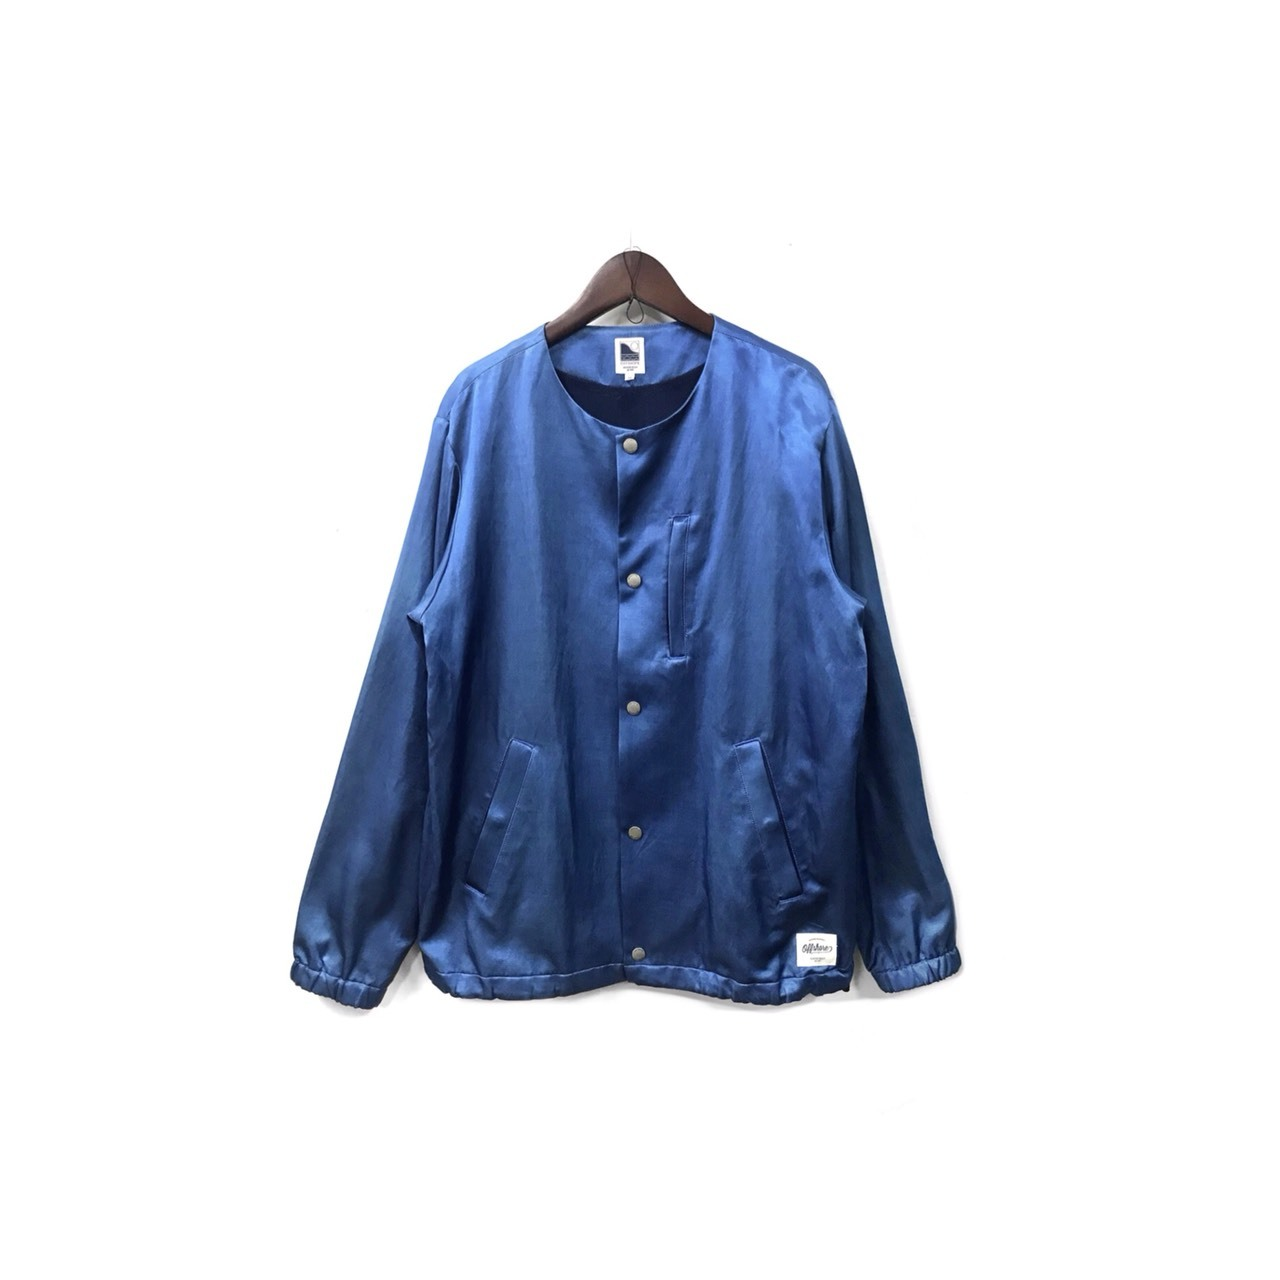 offshore - No Collar Coach Jacket (size - M) ¥15500+tax → ¥13950+tax